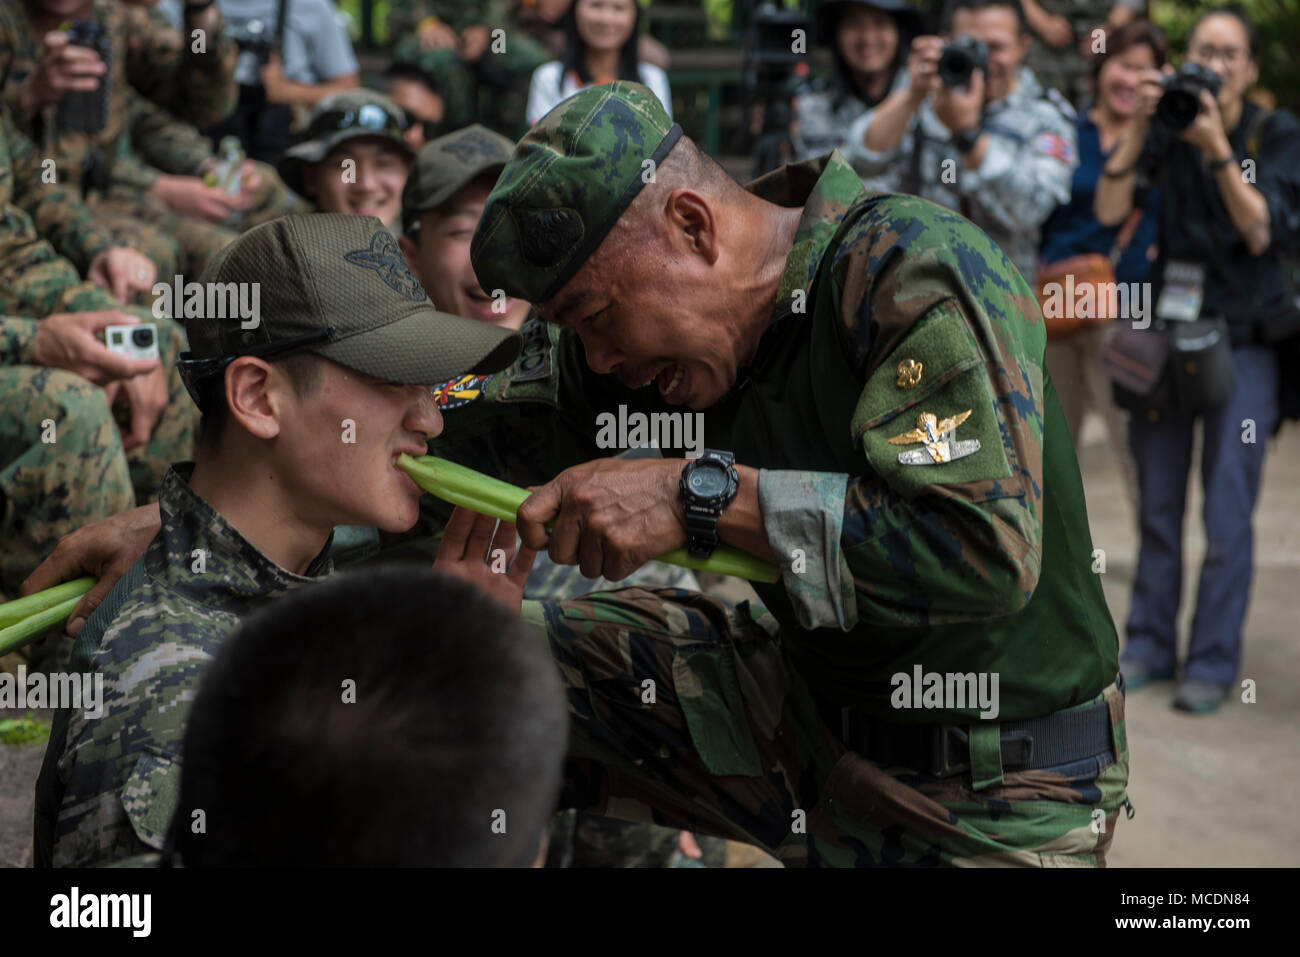 Royal Thai Marine Corps Stockfotos & Royal Thai Marine Corps Bilder ...